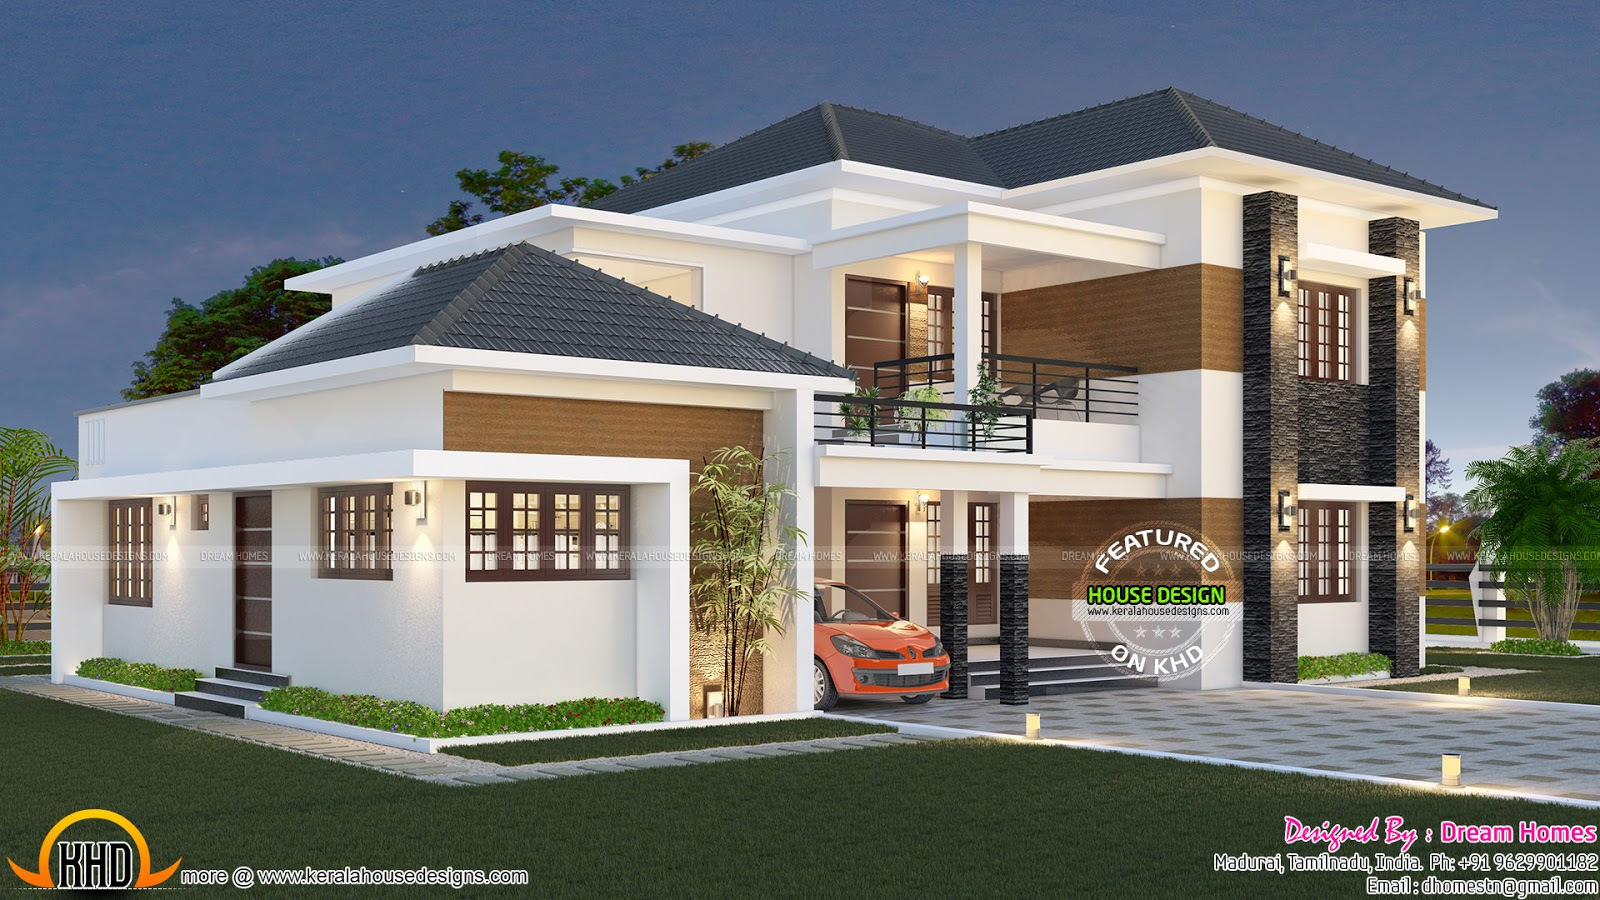 Elegant south indian villa kerala home design and floor Indian villa floor plans